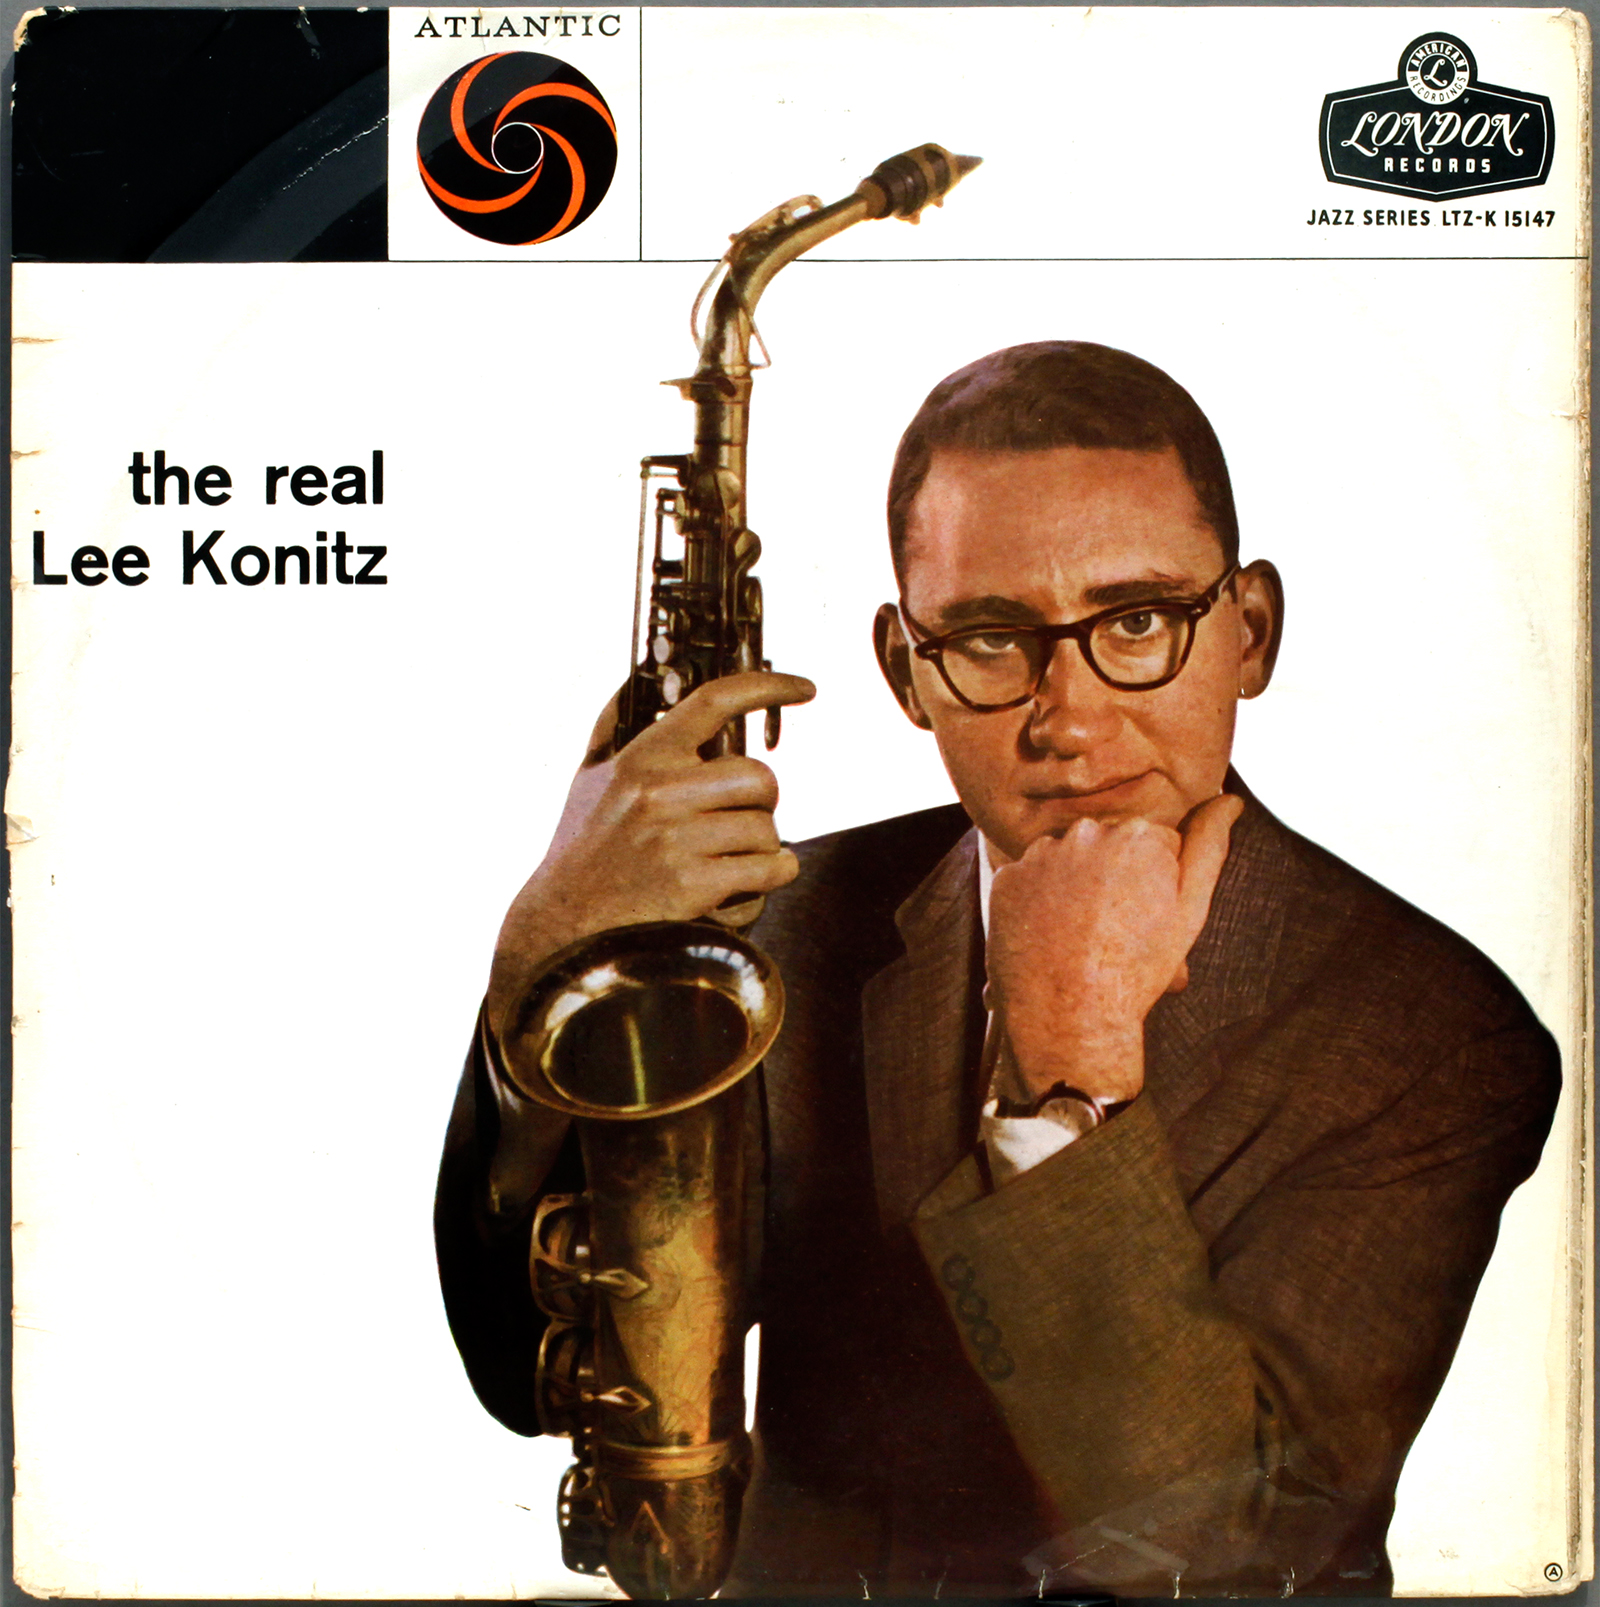 The Real Lee Konitz 1958 Londonjazzcollector